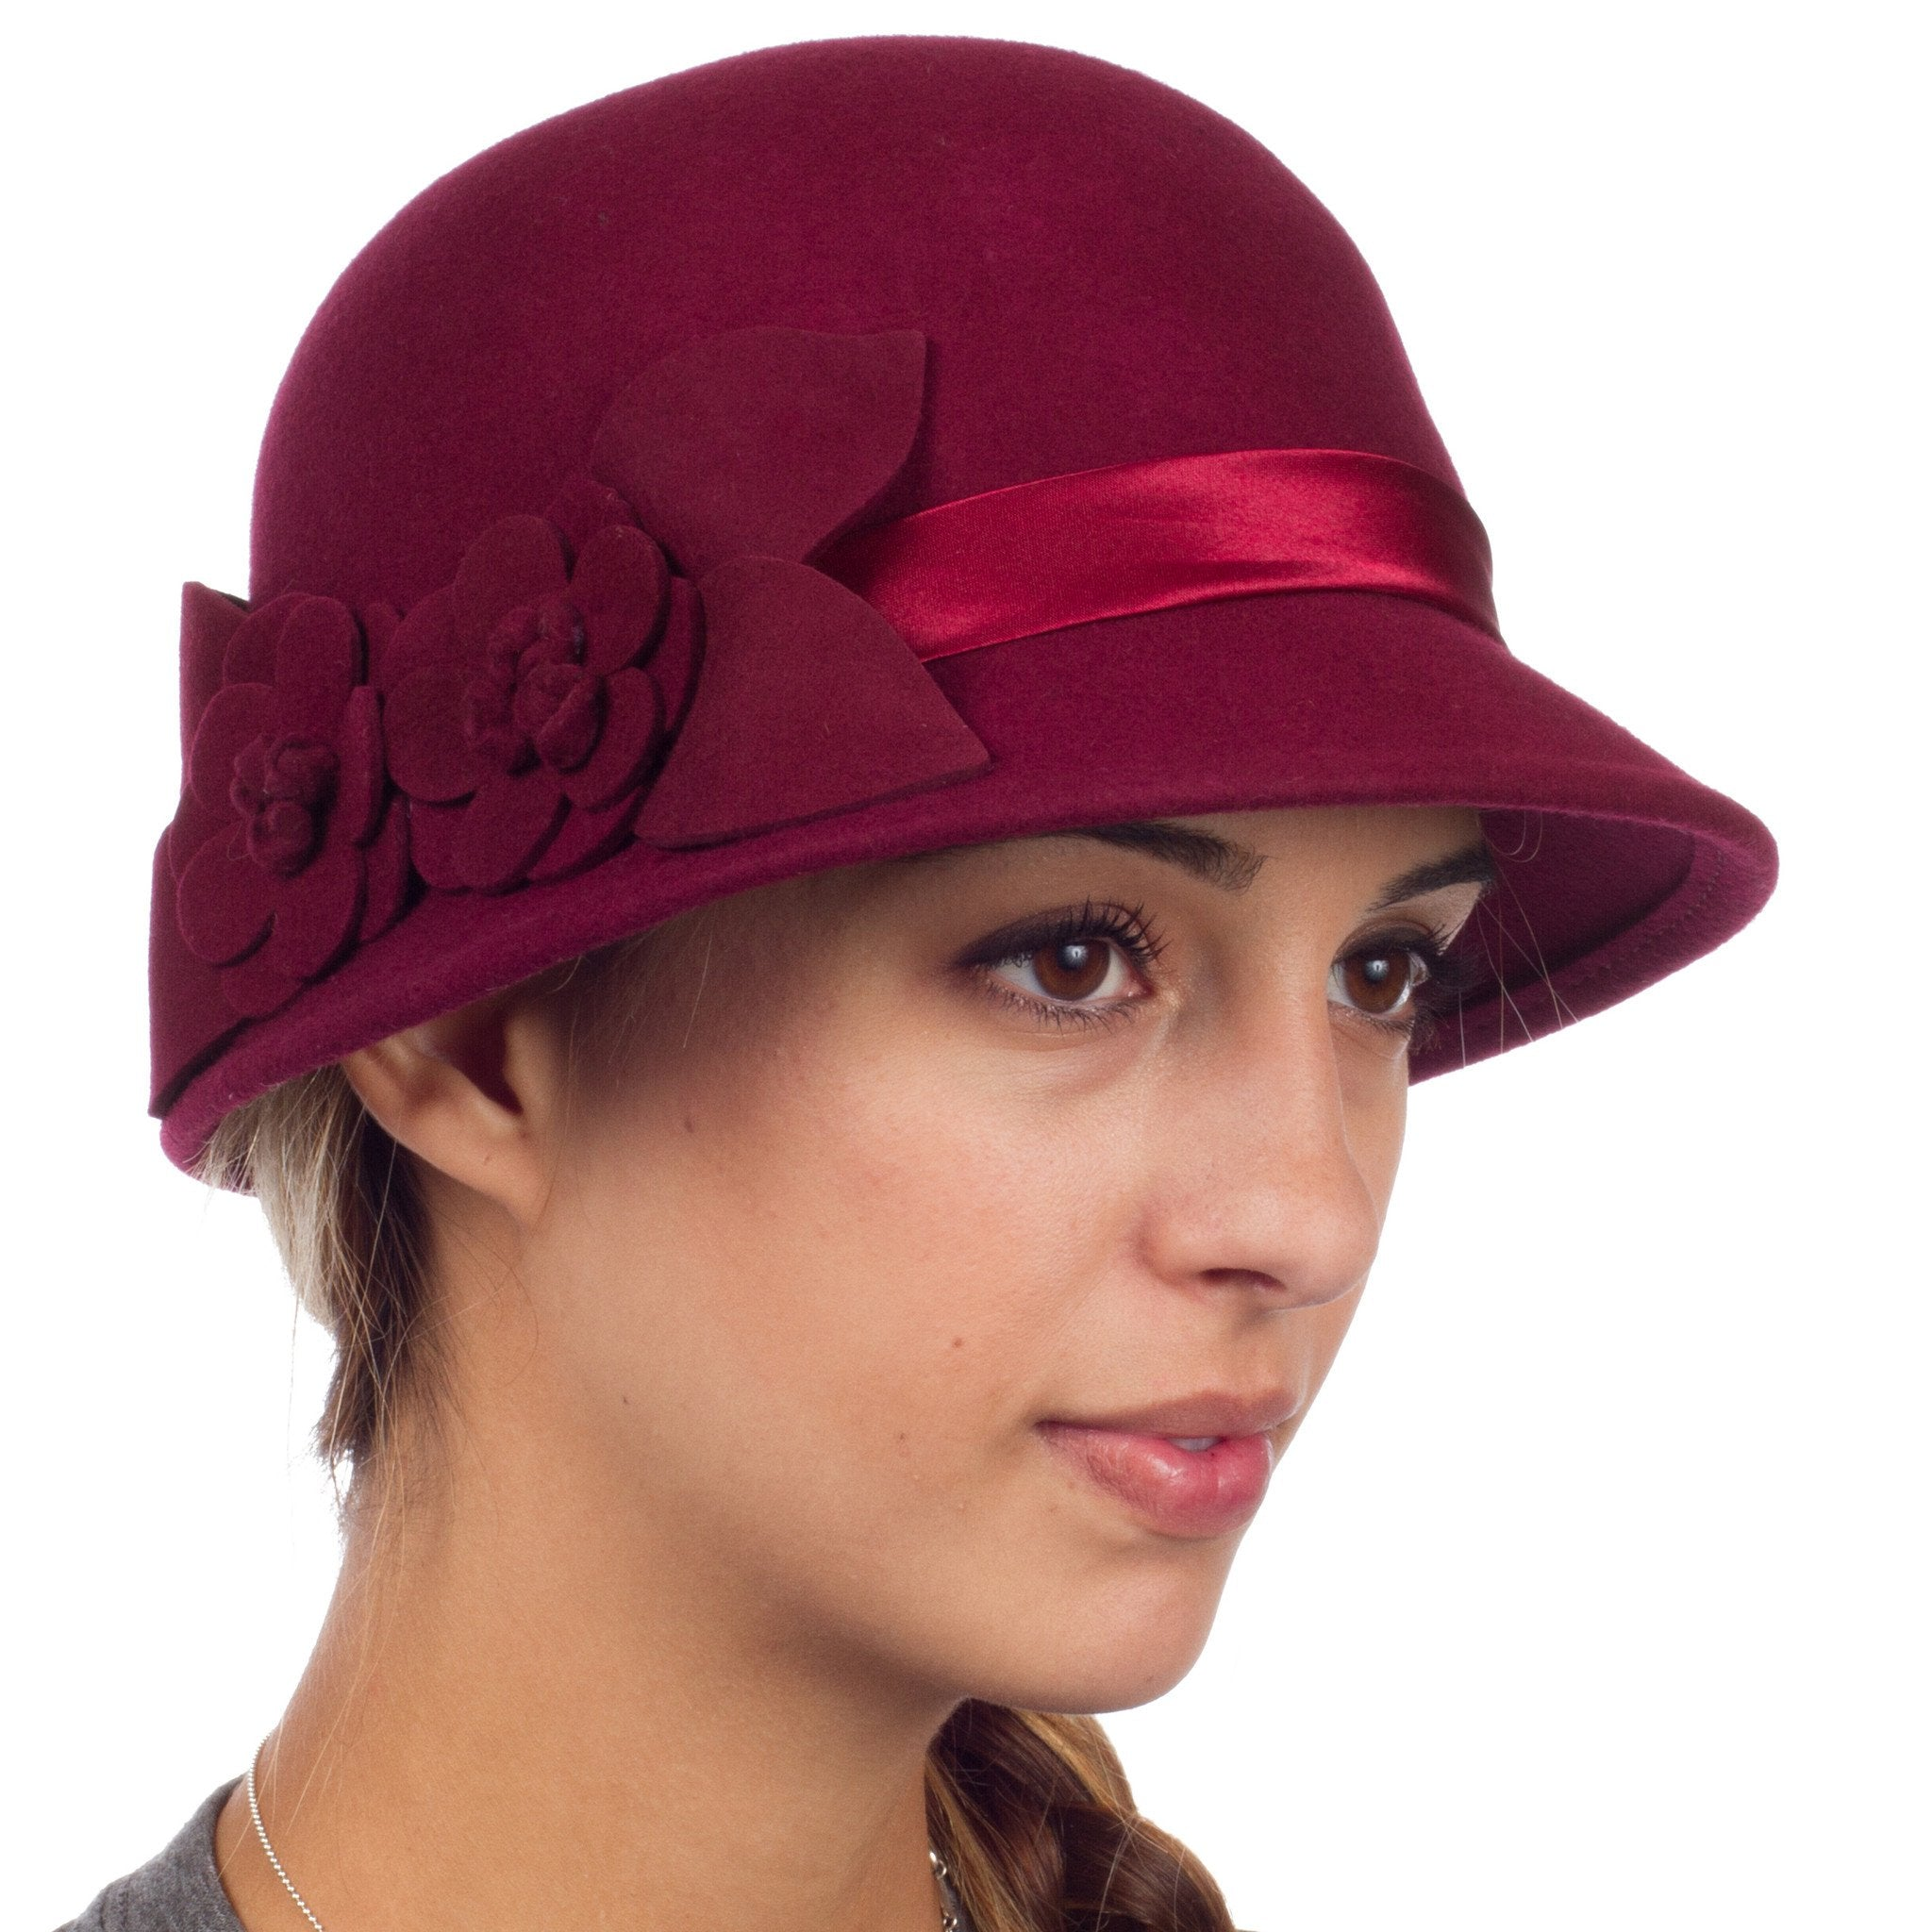 8b1d5143737 Sakkas Vivian Vintage Style 100% Wool Cloche Bell Hat with Flower Accent